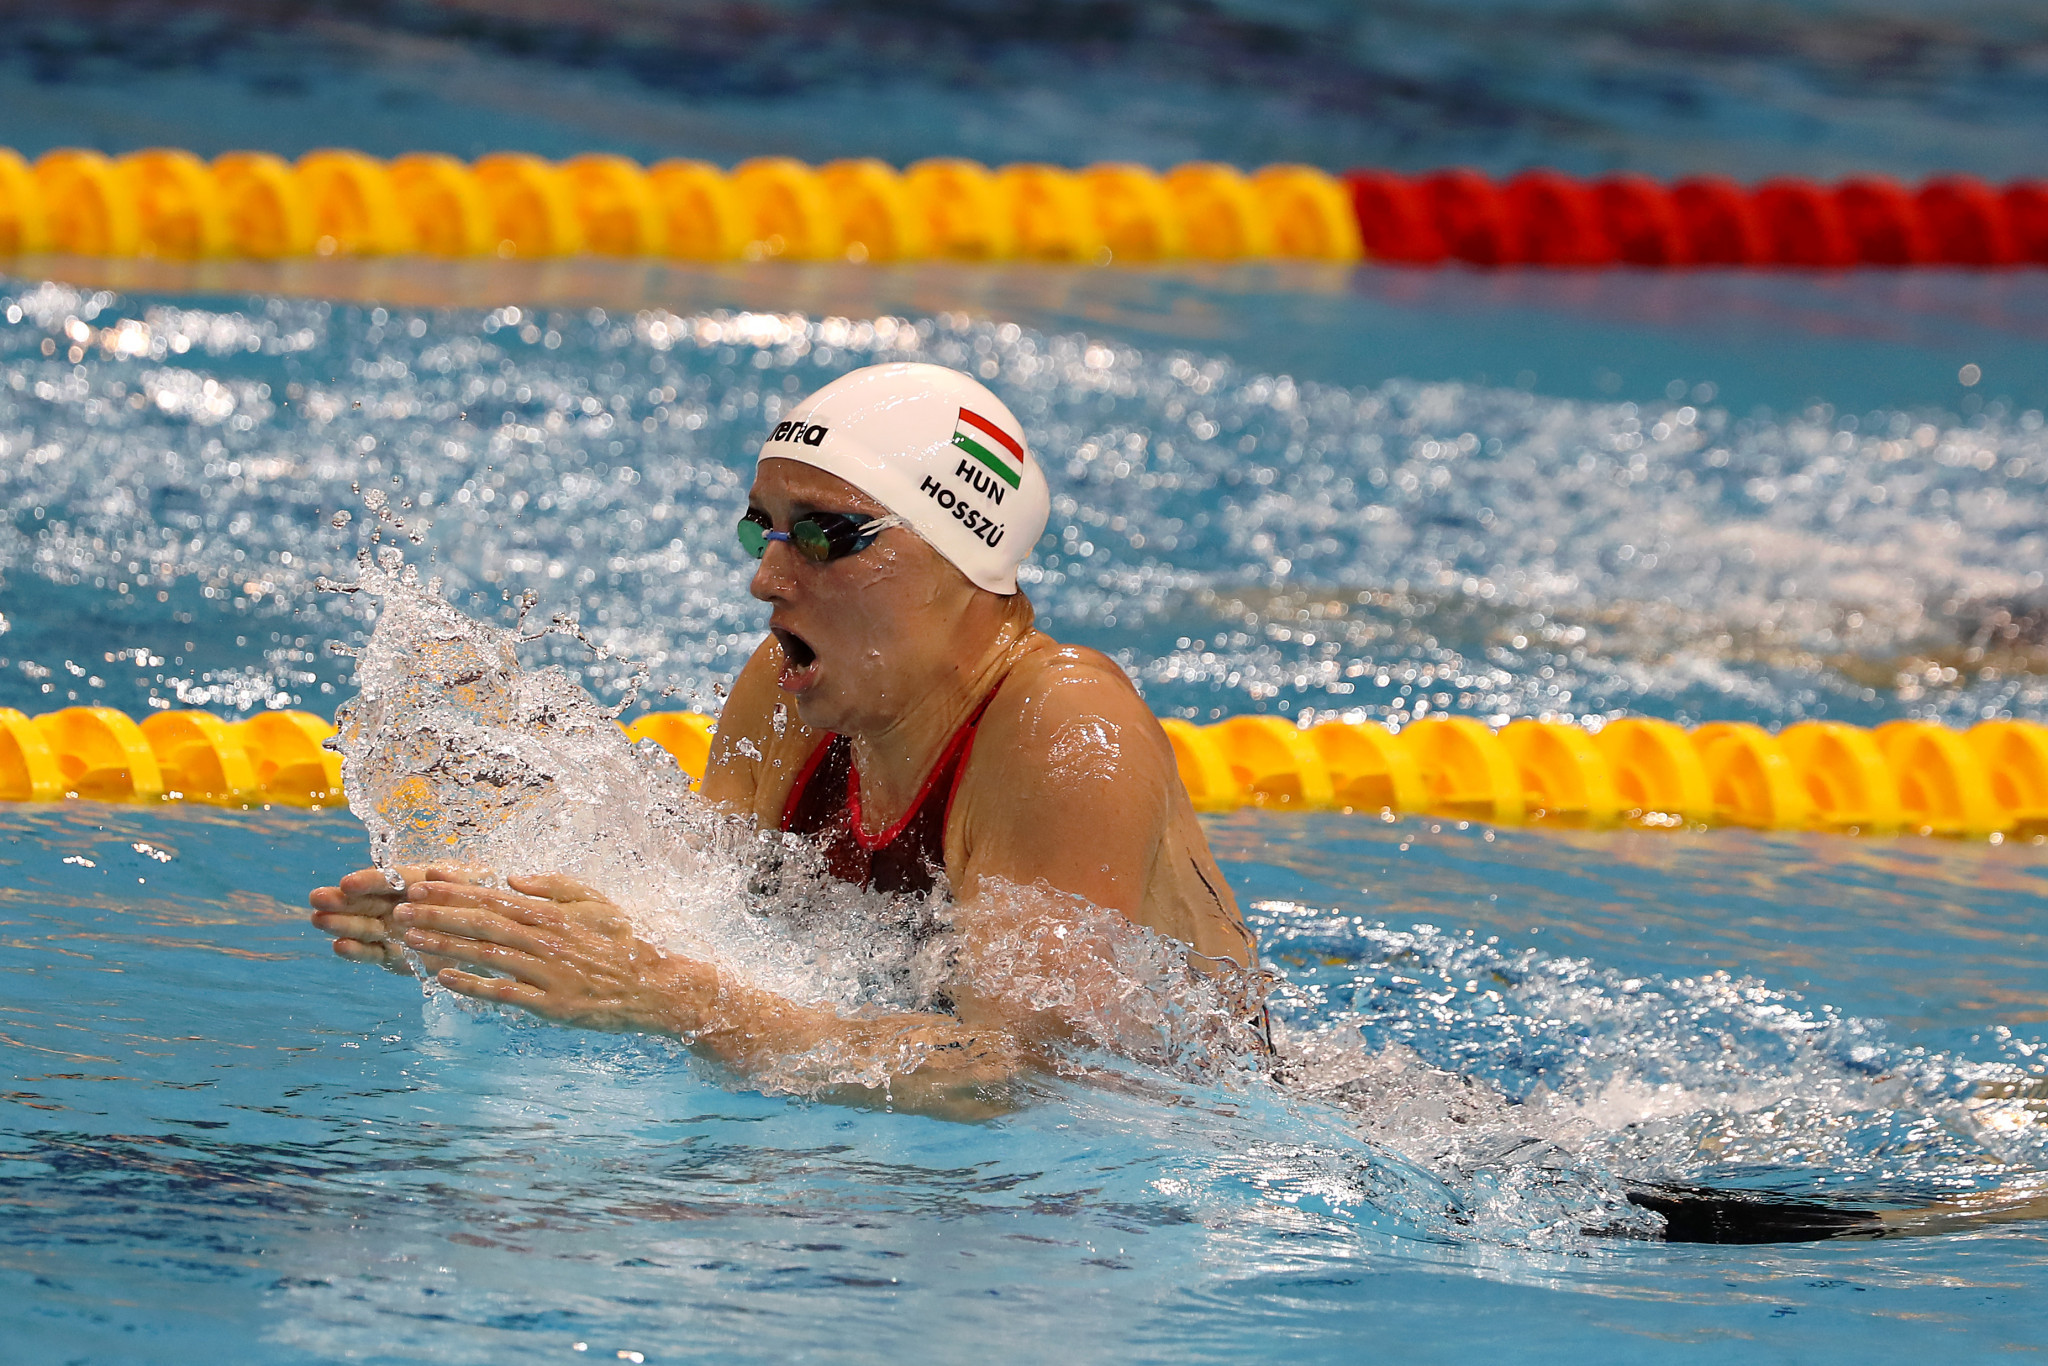 Katinka Hosszu picked up another win in the 400m individual medley ©Getty Images